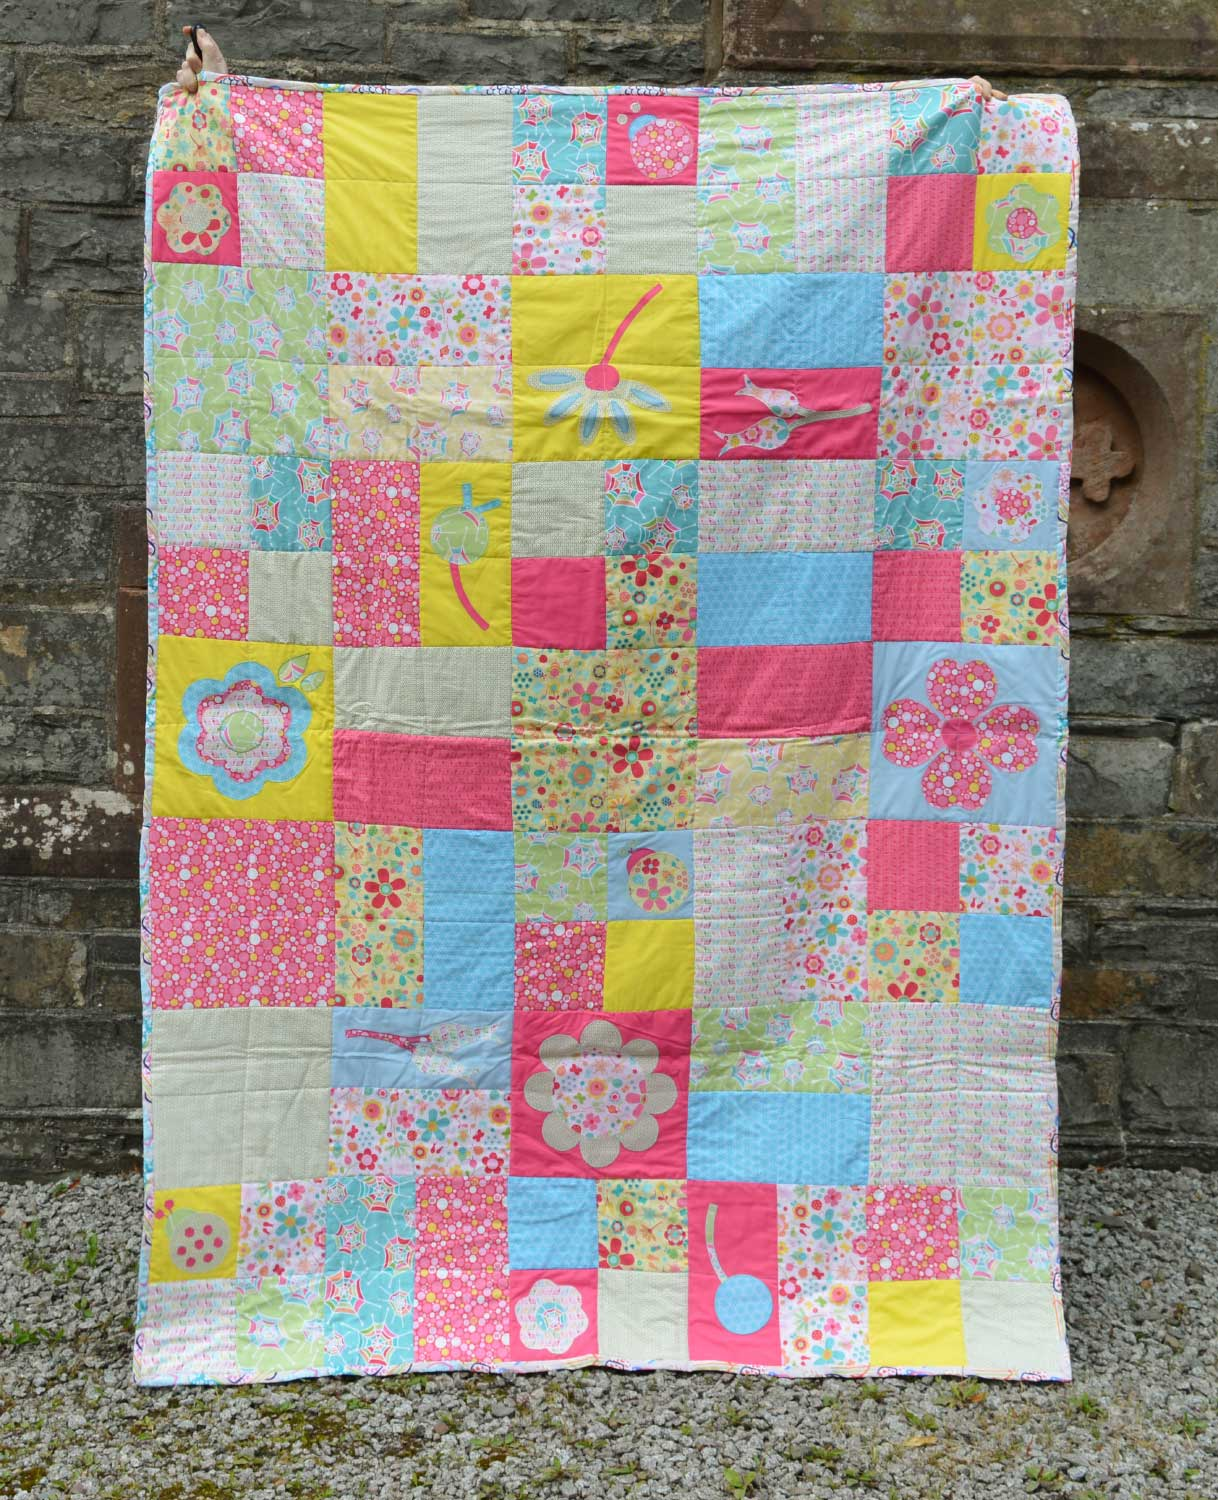 Quilts for Grenfell - Dumfries & Galloway Modern Quilt Guild (DGMQG) // Applique Quilt